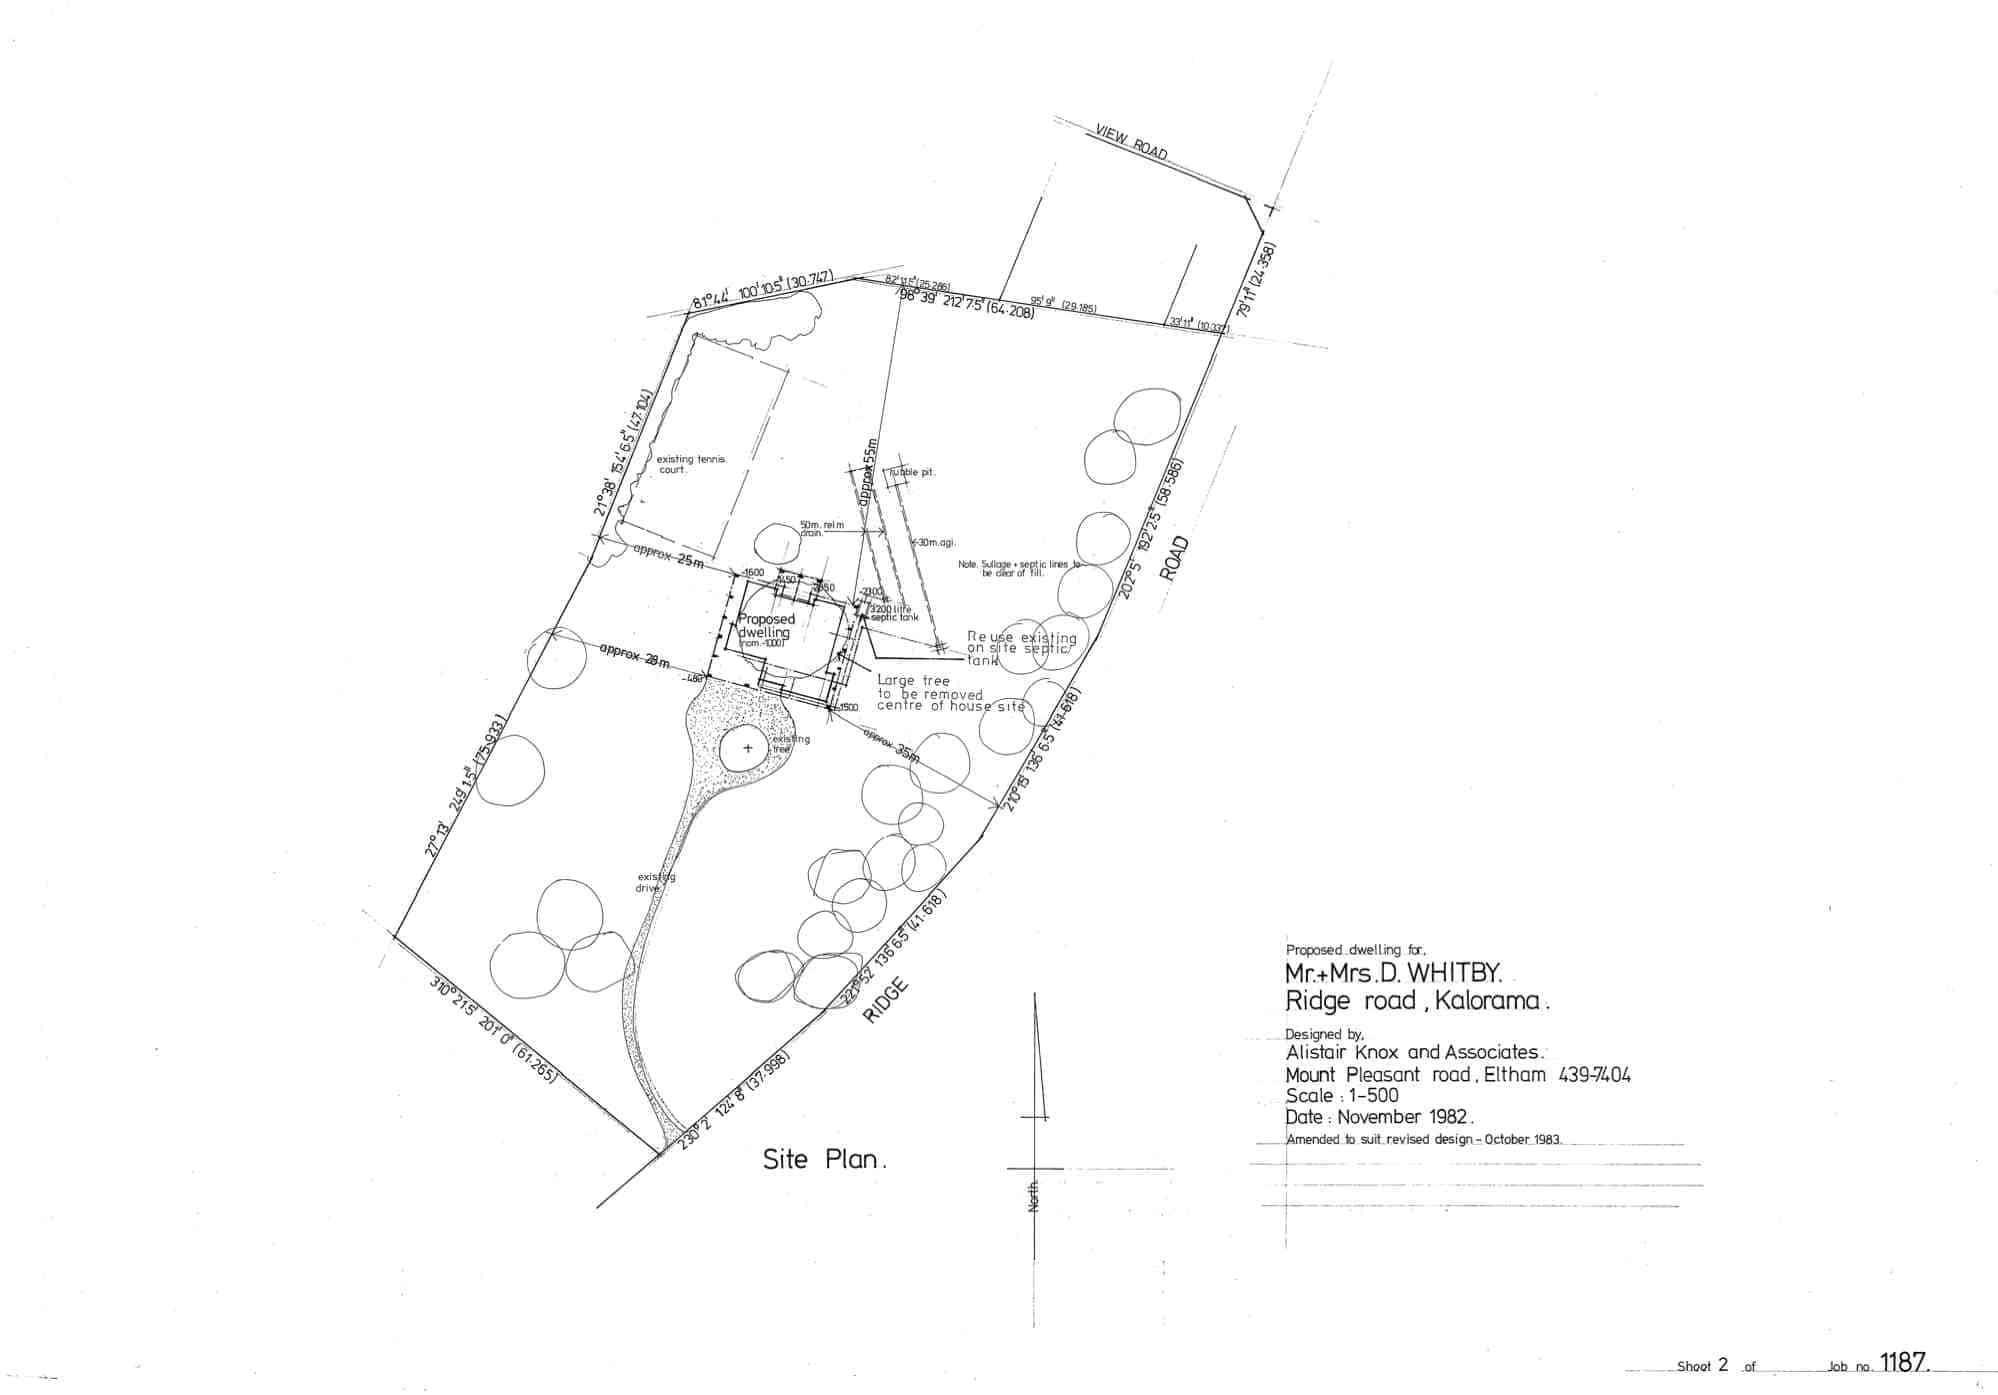 Whitby, 20: site plan